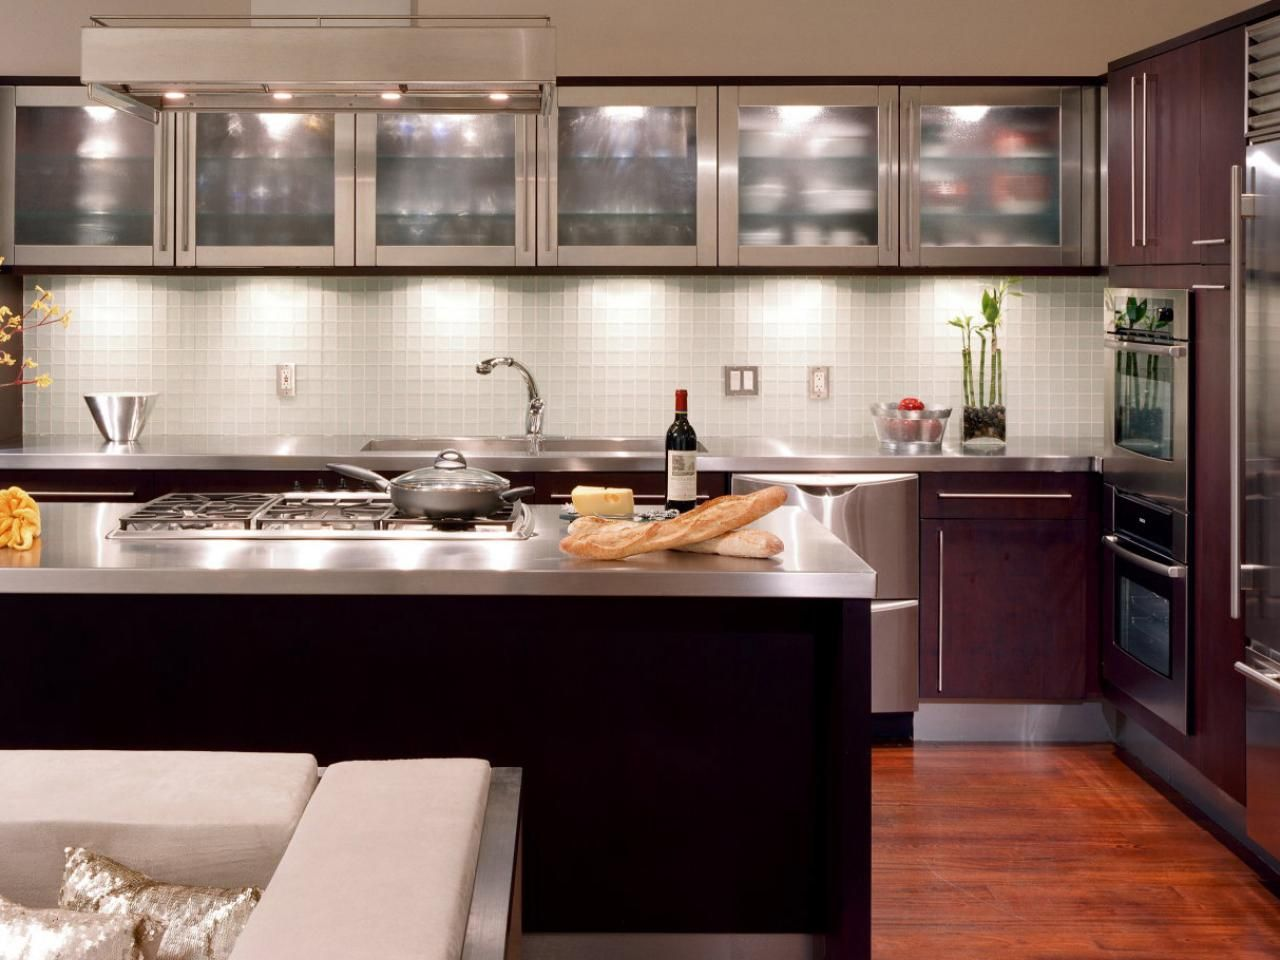 Pictures Of Kitchen Cabinets Beautiful Storage Display Options